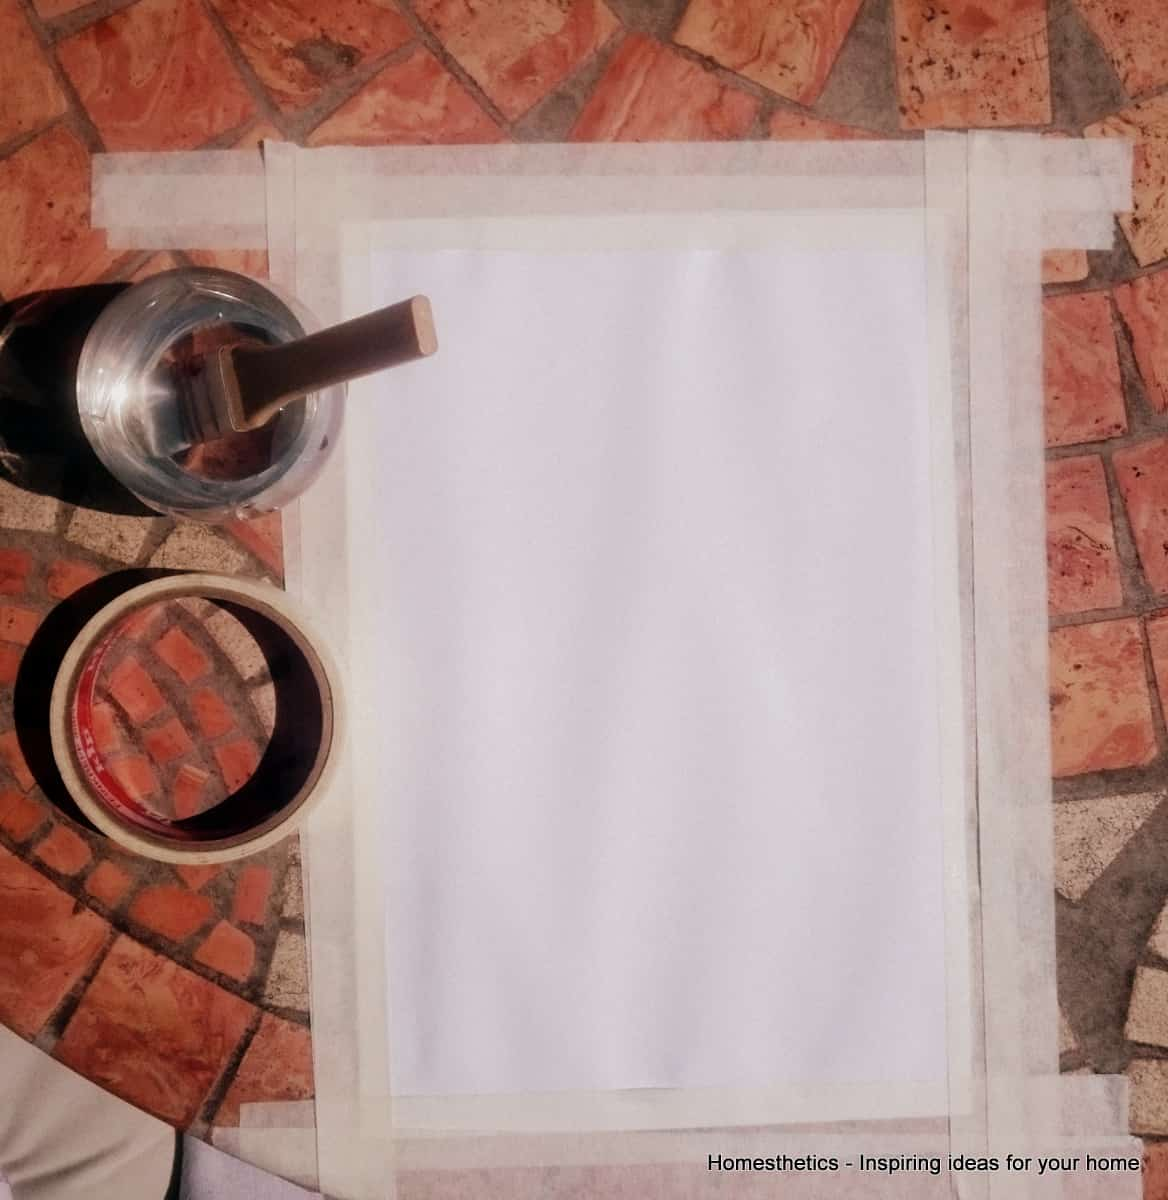 3. PREPARE THE PAPER AND FIX IT TO YOUR WORKING GROUND